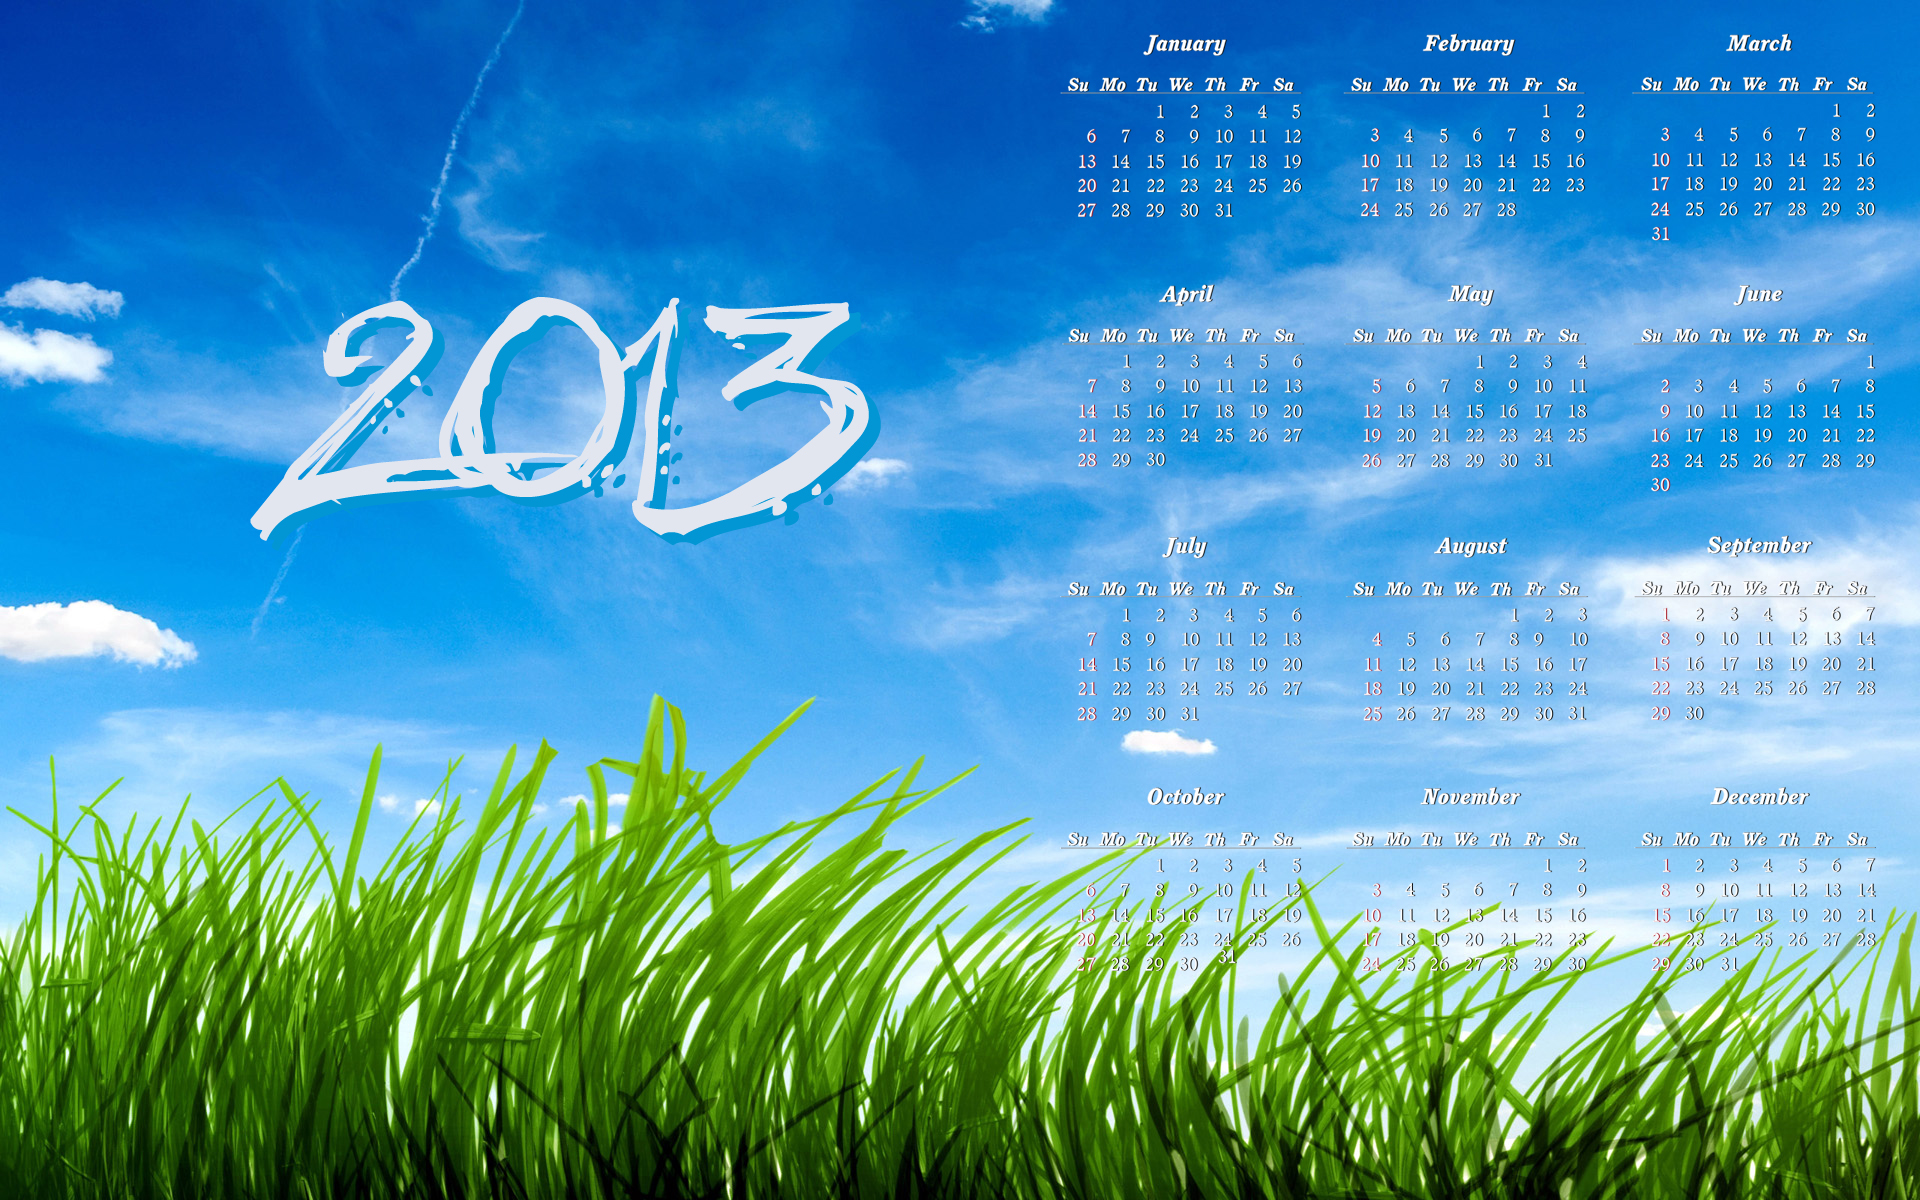 Background Calendar Wallpaper - WallpaperSafari